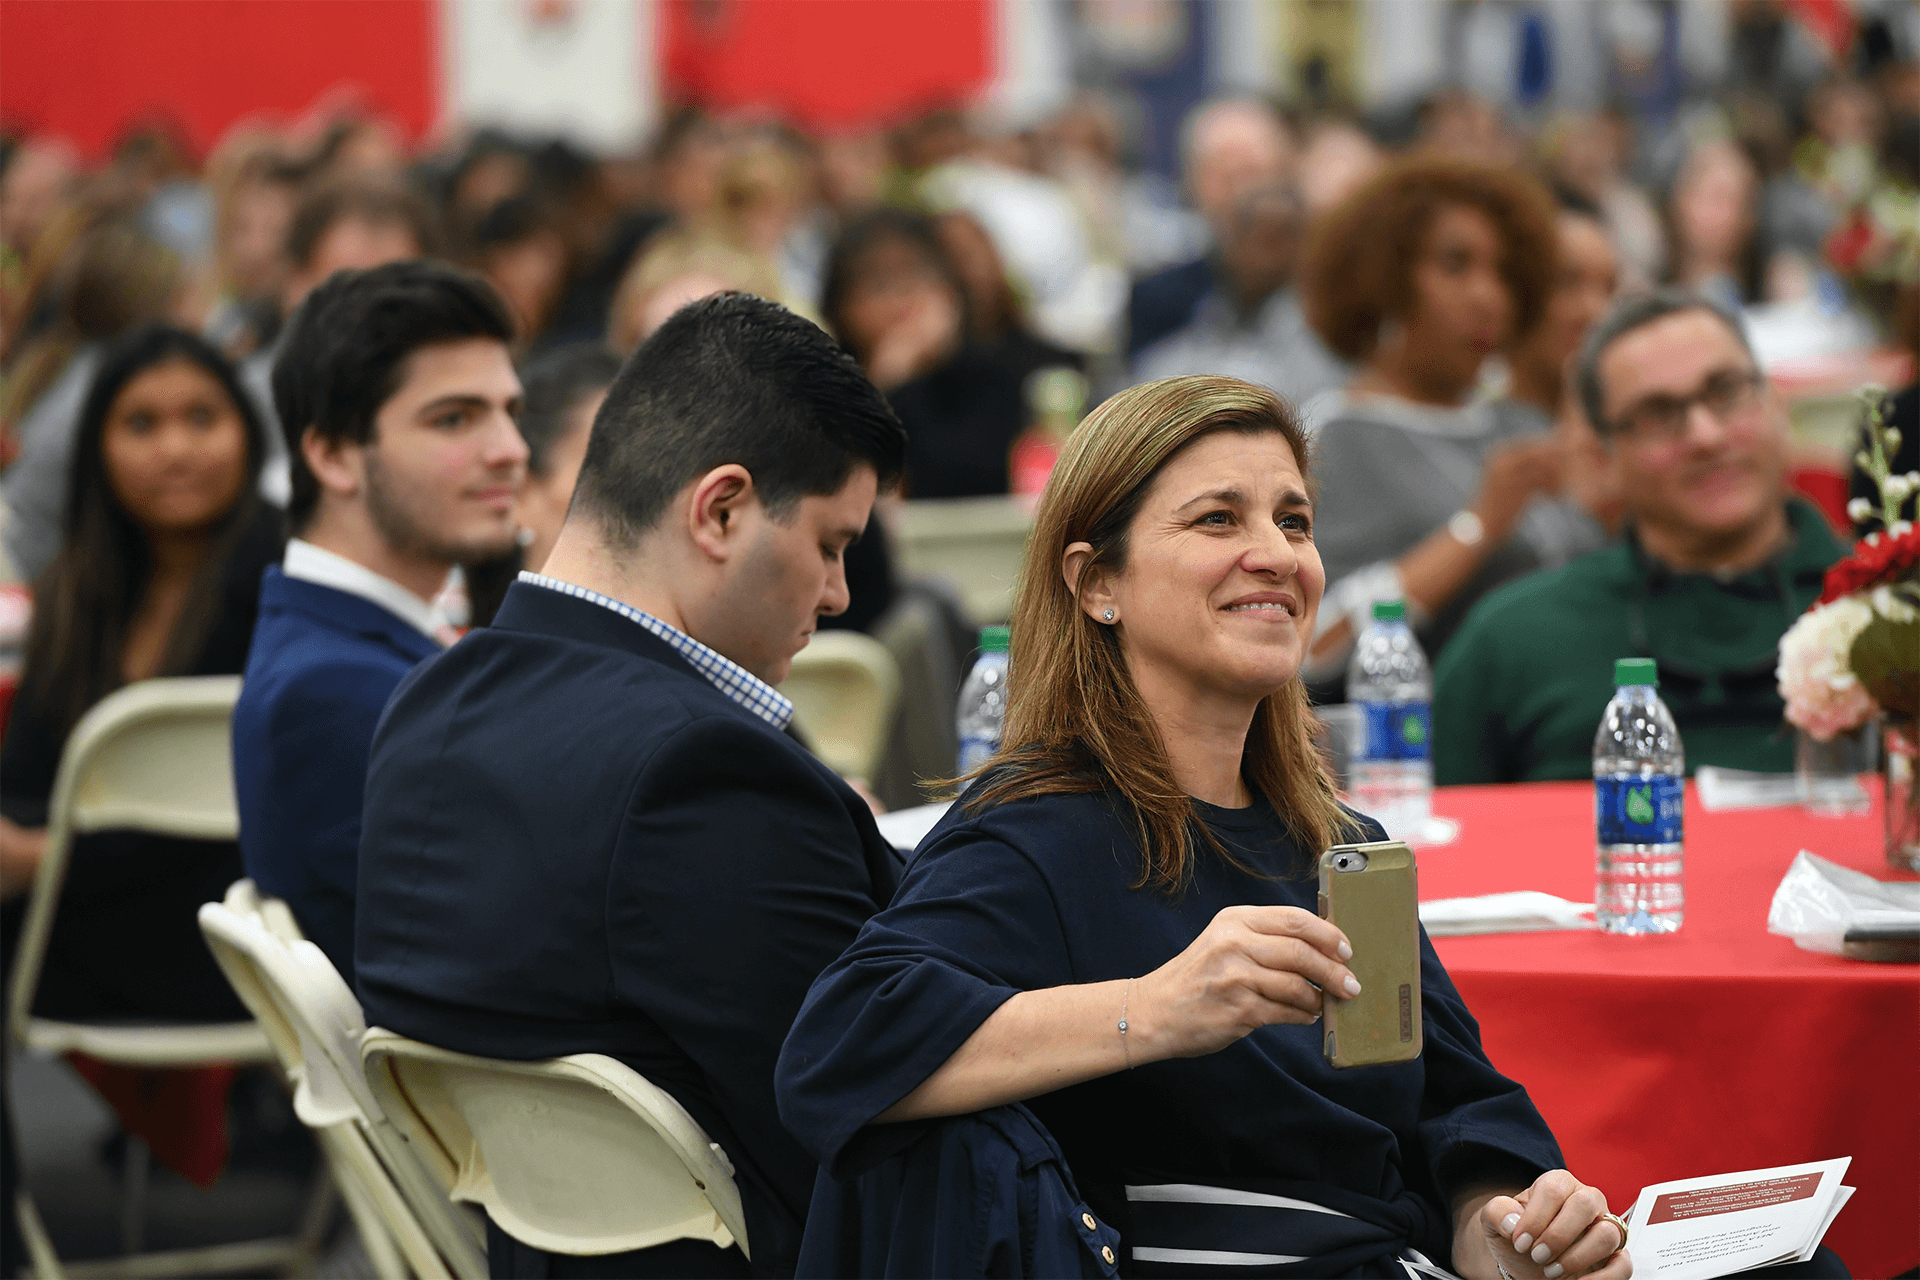 NSLS member smiling with a phone in her hand at an event